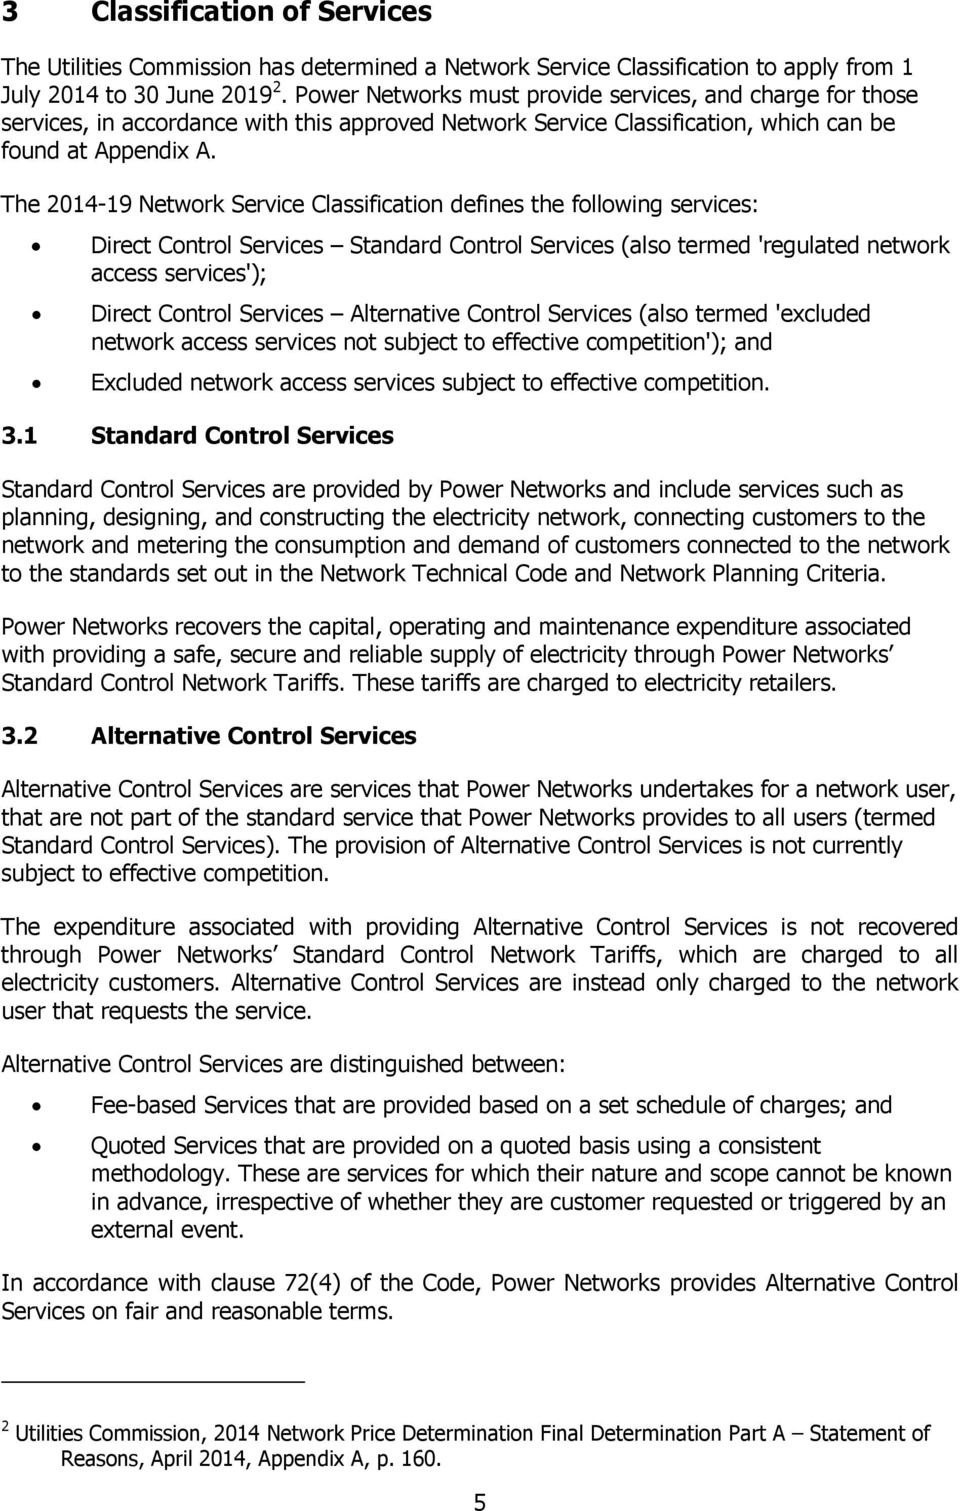 The 2014-19 Network Service Classification defines the following services: Direct Control Services Standard Control Services (also termed 'regulated network access services'); Direct Control Services